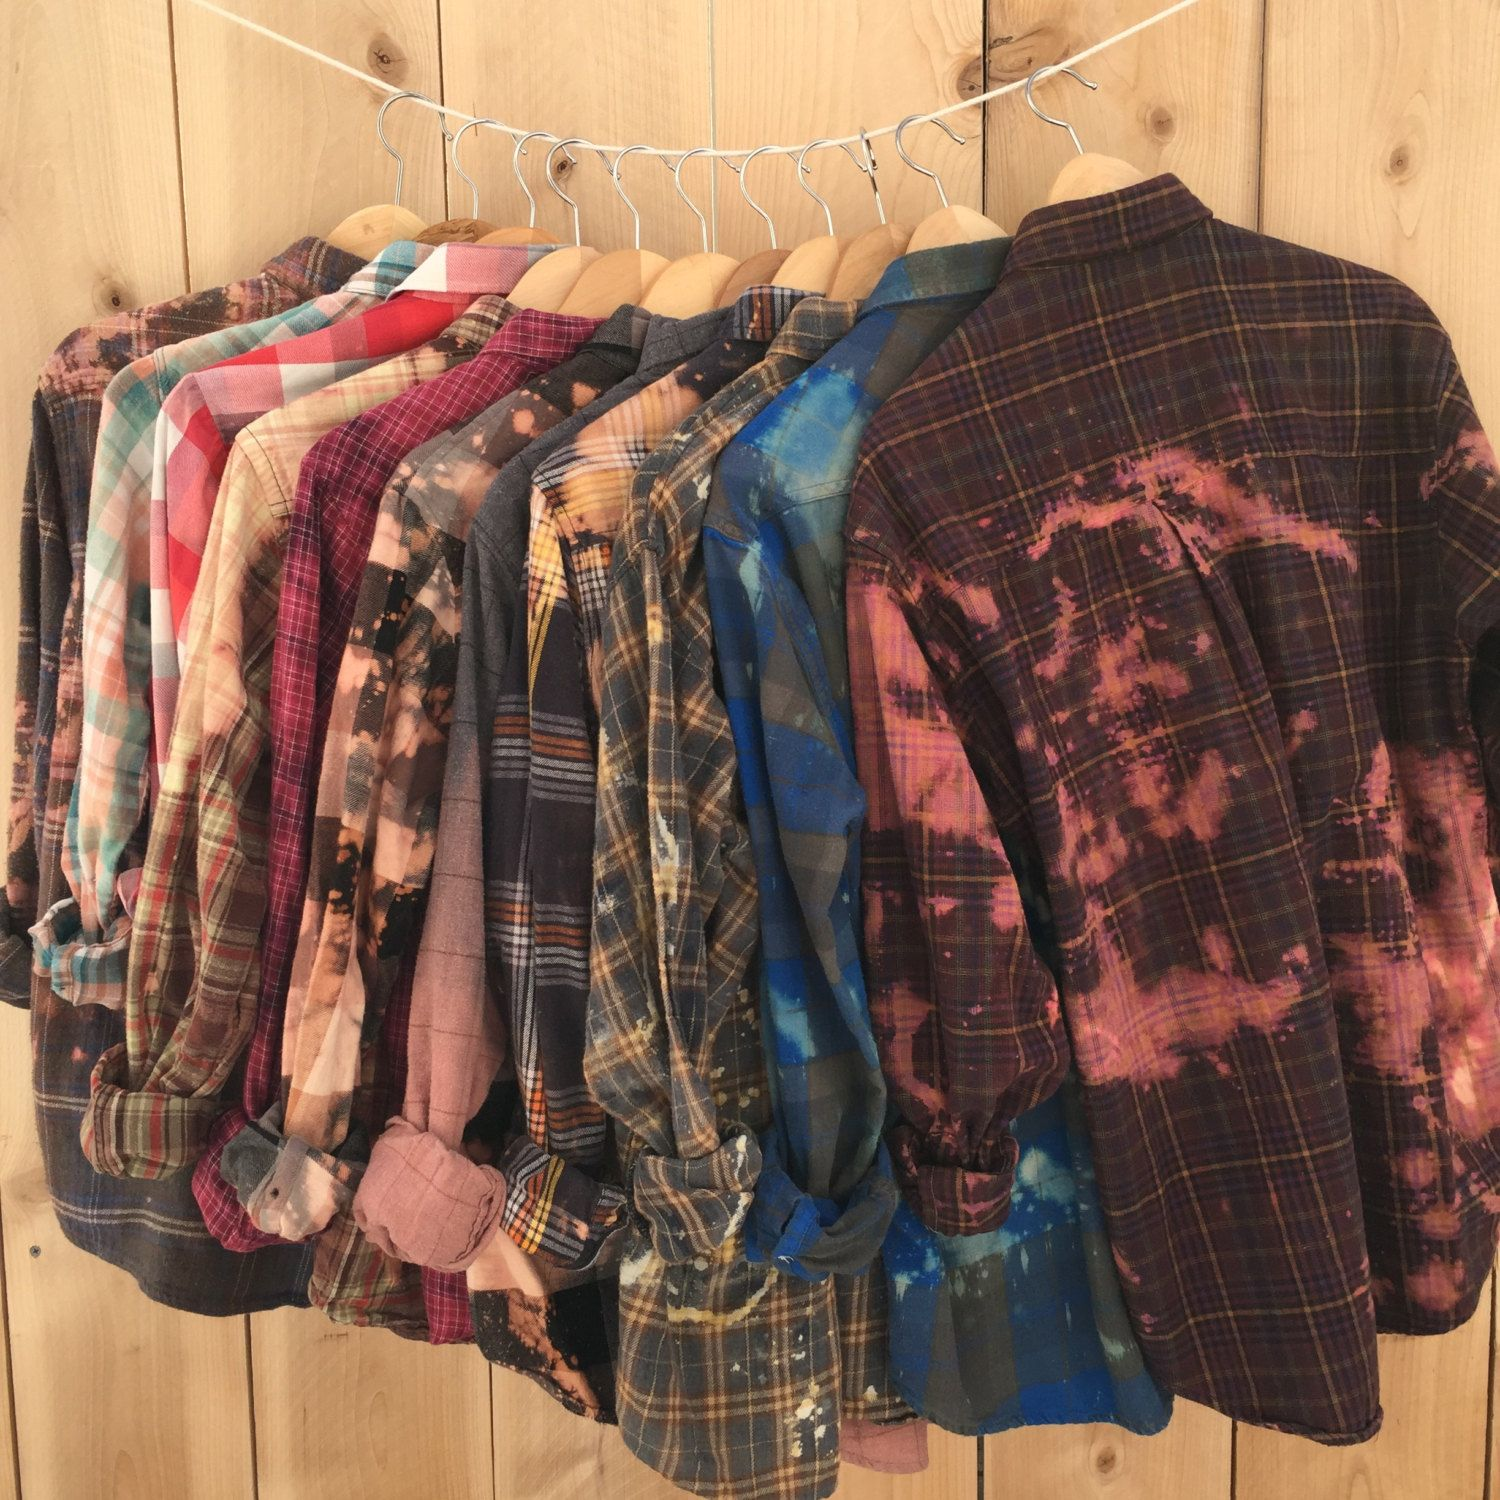 1b4d57b1aeba You Choose Distressed Flannels All Sizes Plaid Button Up Shirts, Soft,  Oversized Grunge Clothes, Bleached Flannel, Bundles, Bridesmaids Gift by  The Vintage ...